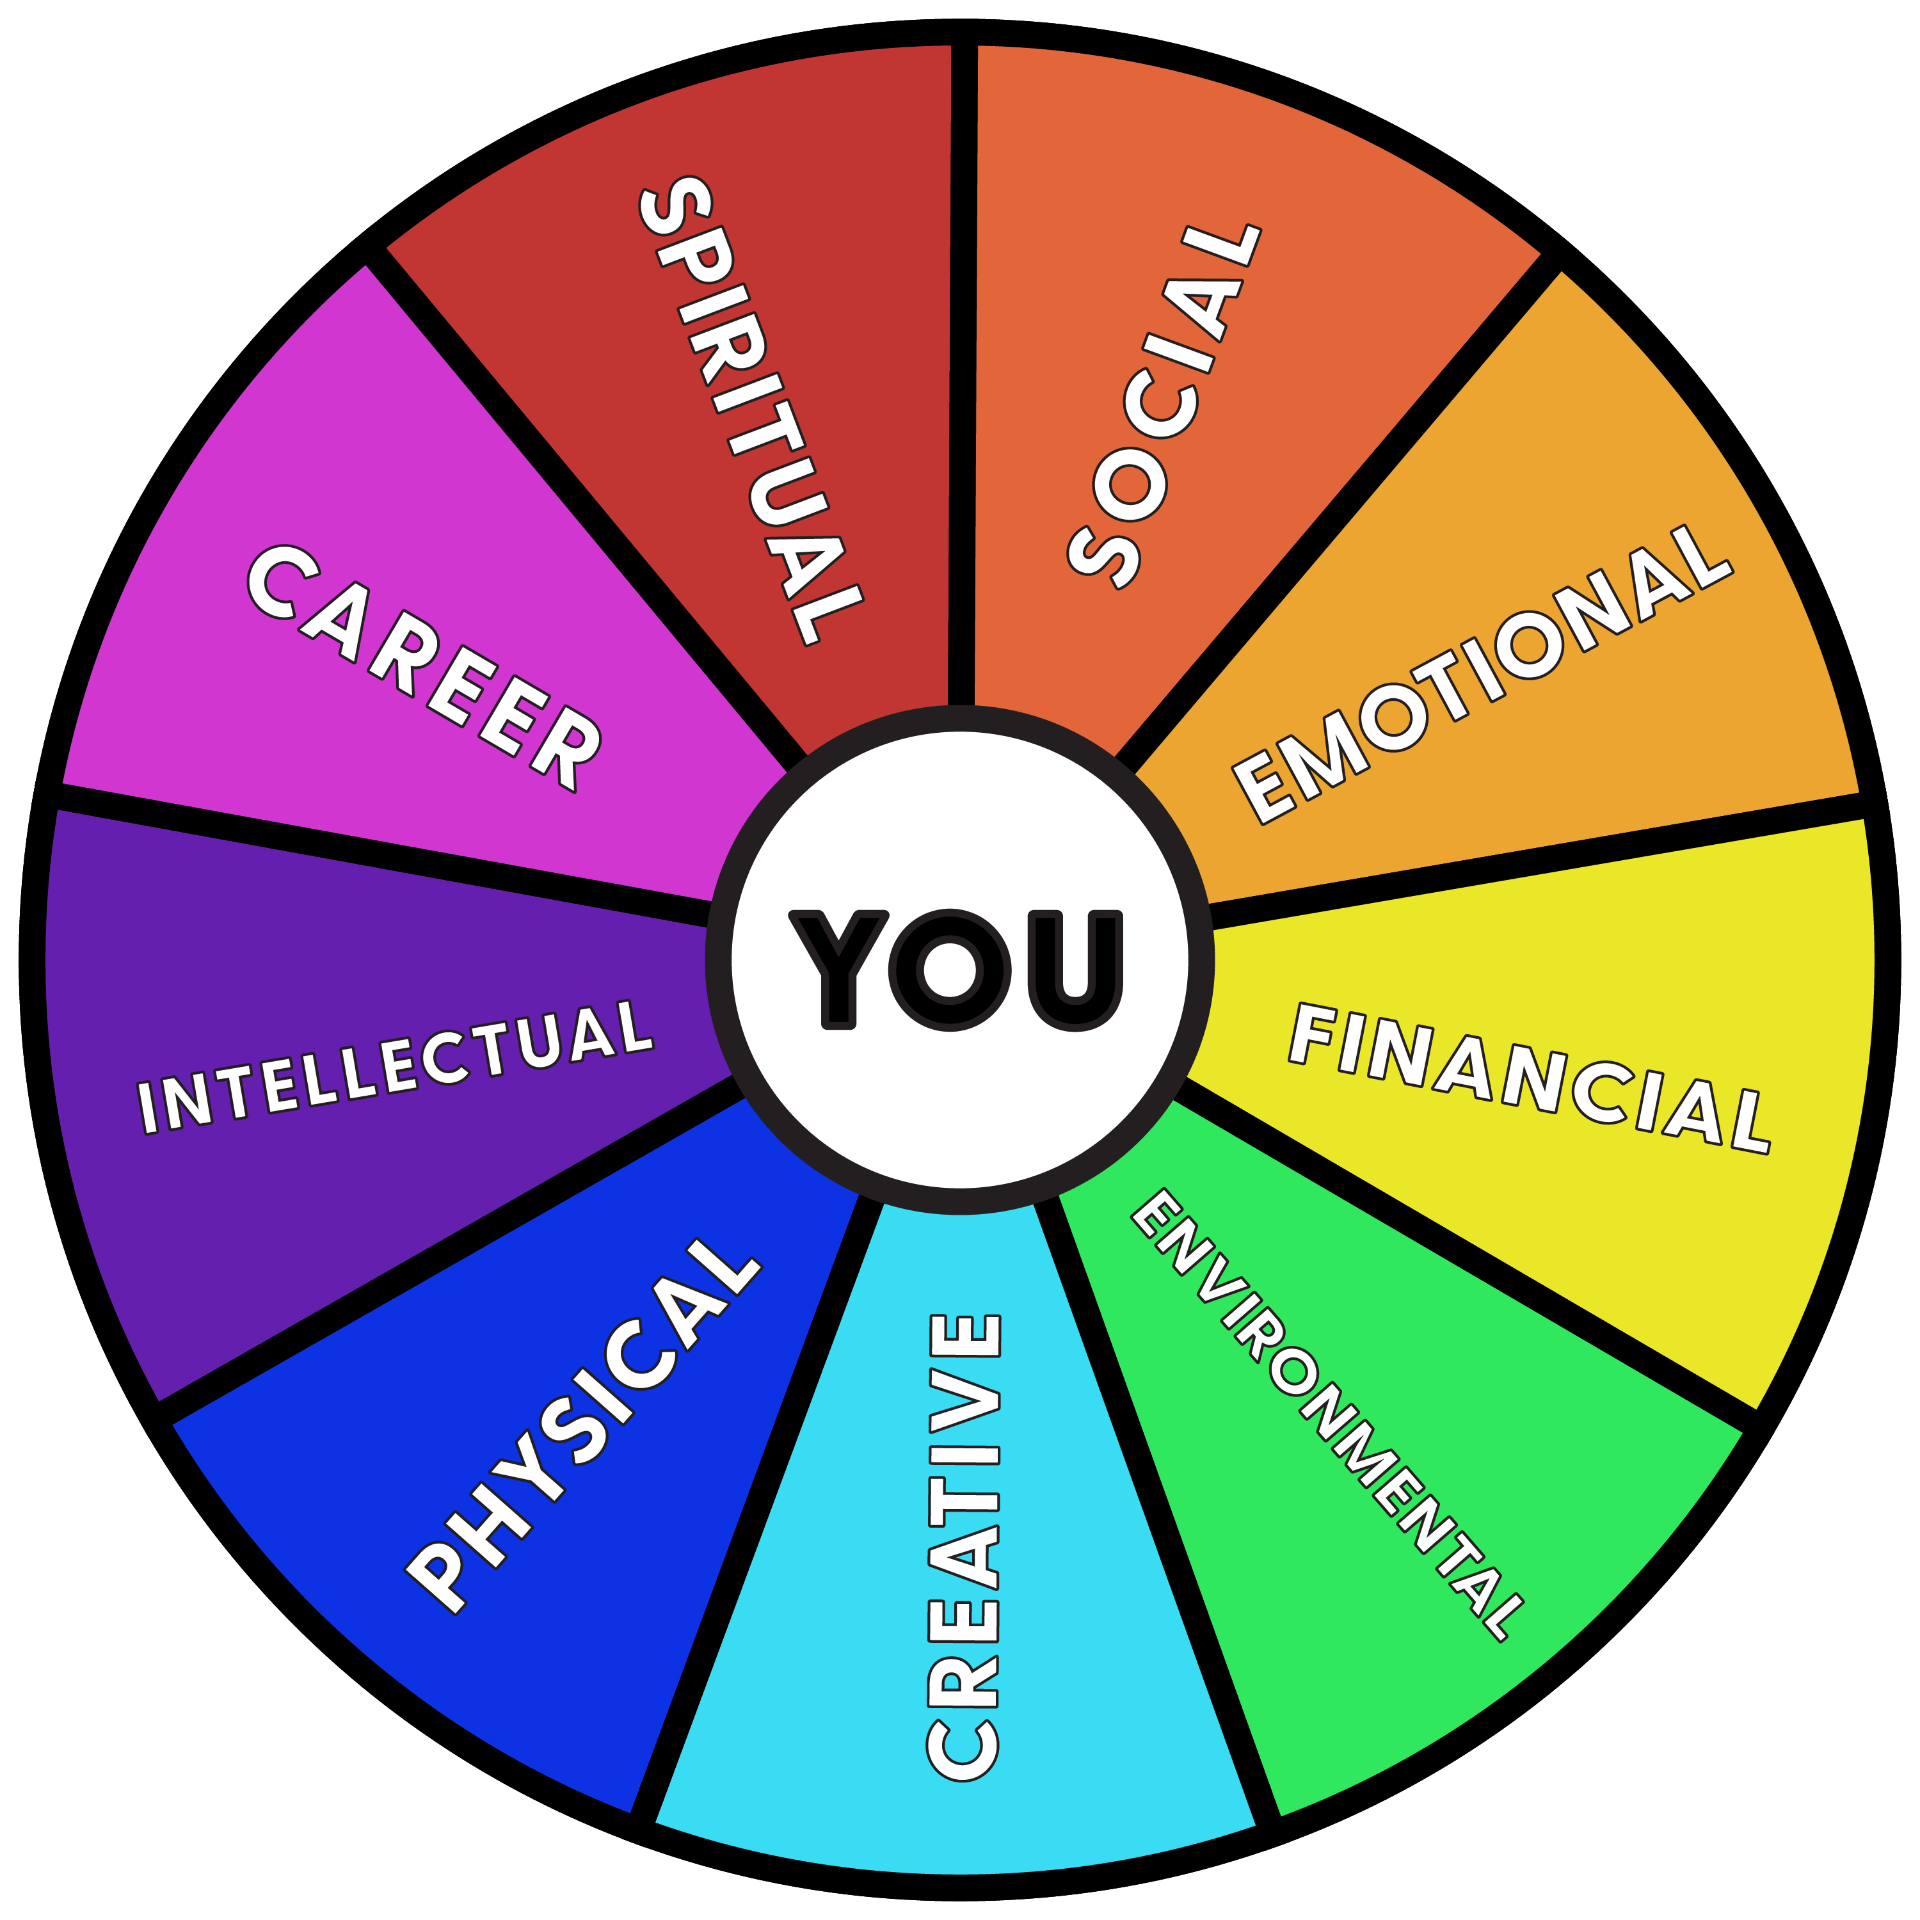 """wheel with the word """"you"""" in the center and surrounding it are spokes for each of the 9 wellness dimensions: social, emotional, financial, environmental, creative, physical, intellectual, career and spiritual."""